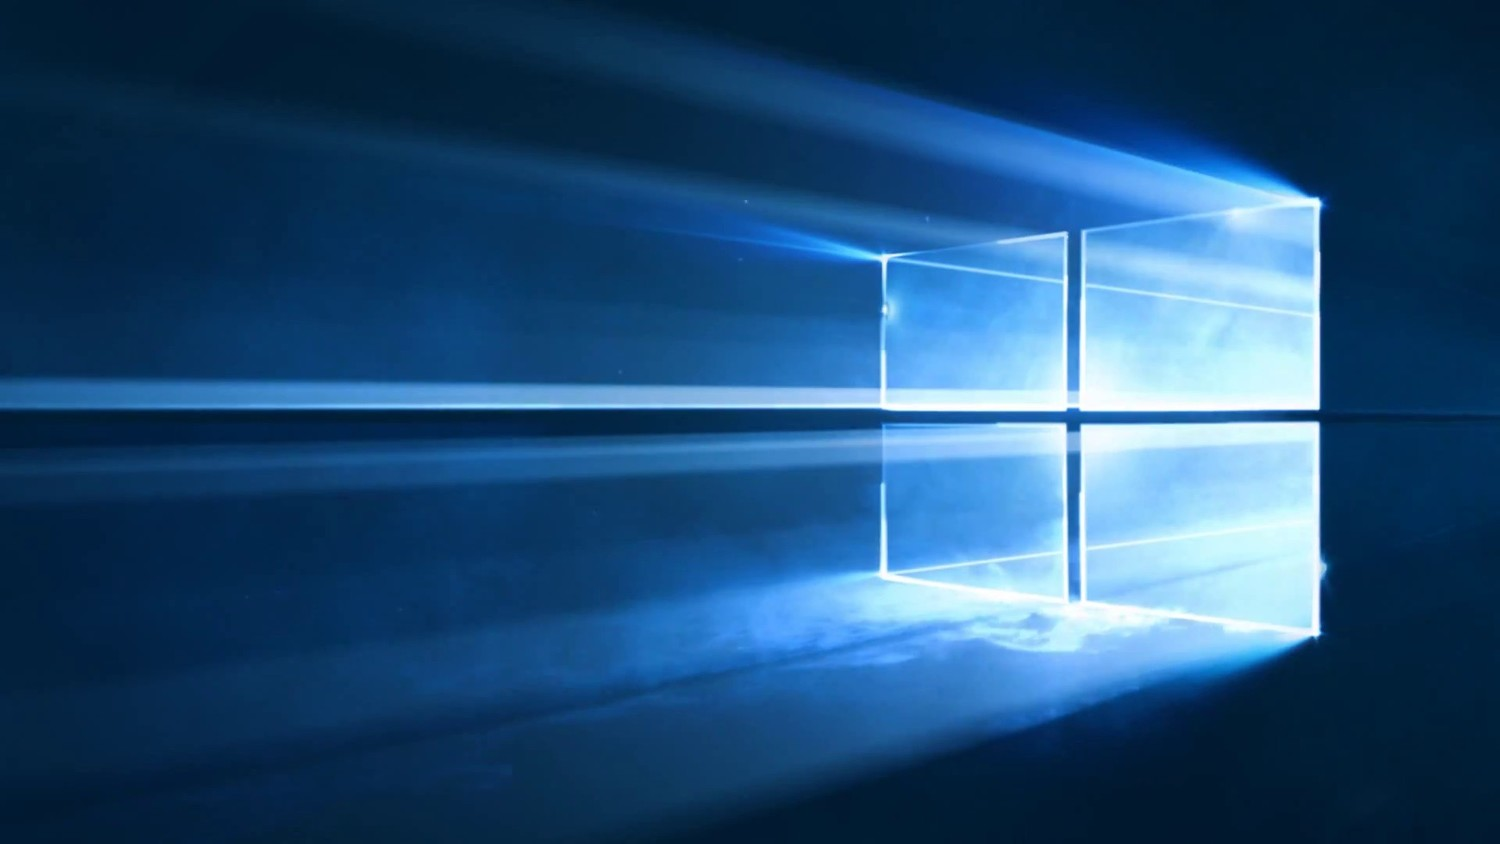 Upgrade Windows 7 to Windows 10 : What You Should Know